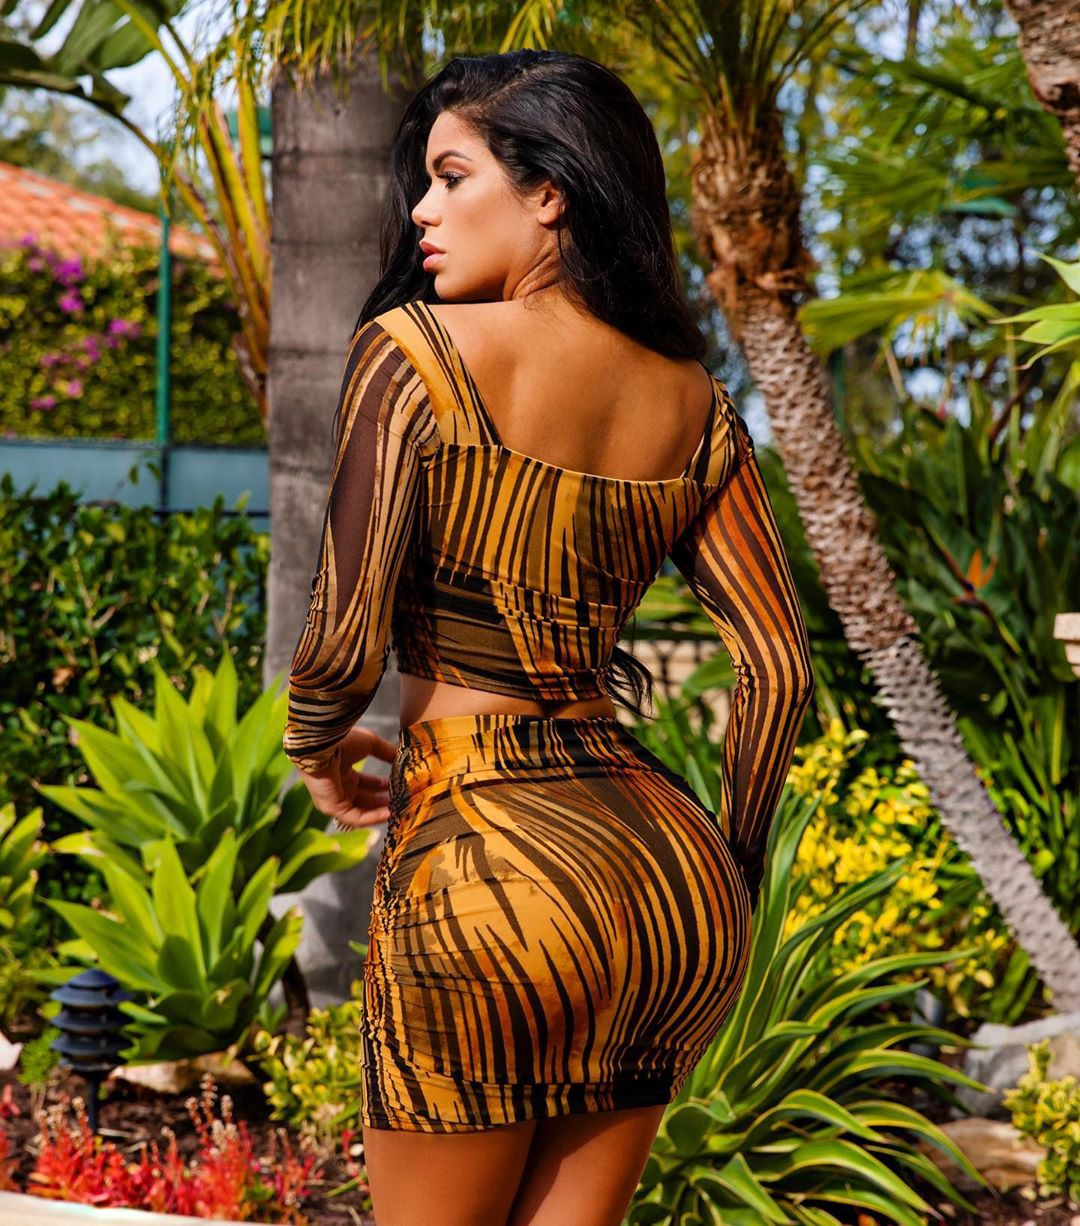 yellow matching style with dress, instagram photoshoot, woman thighs